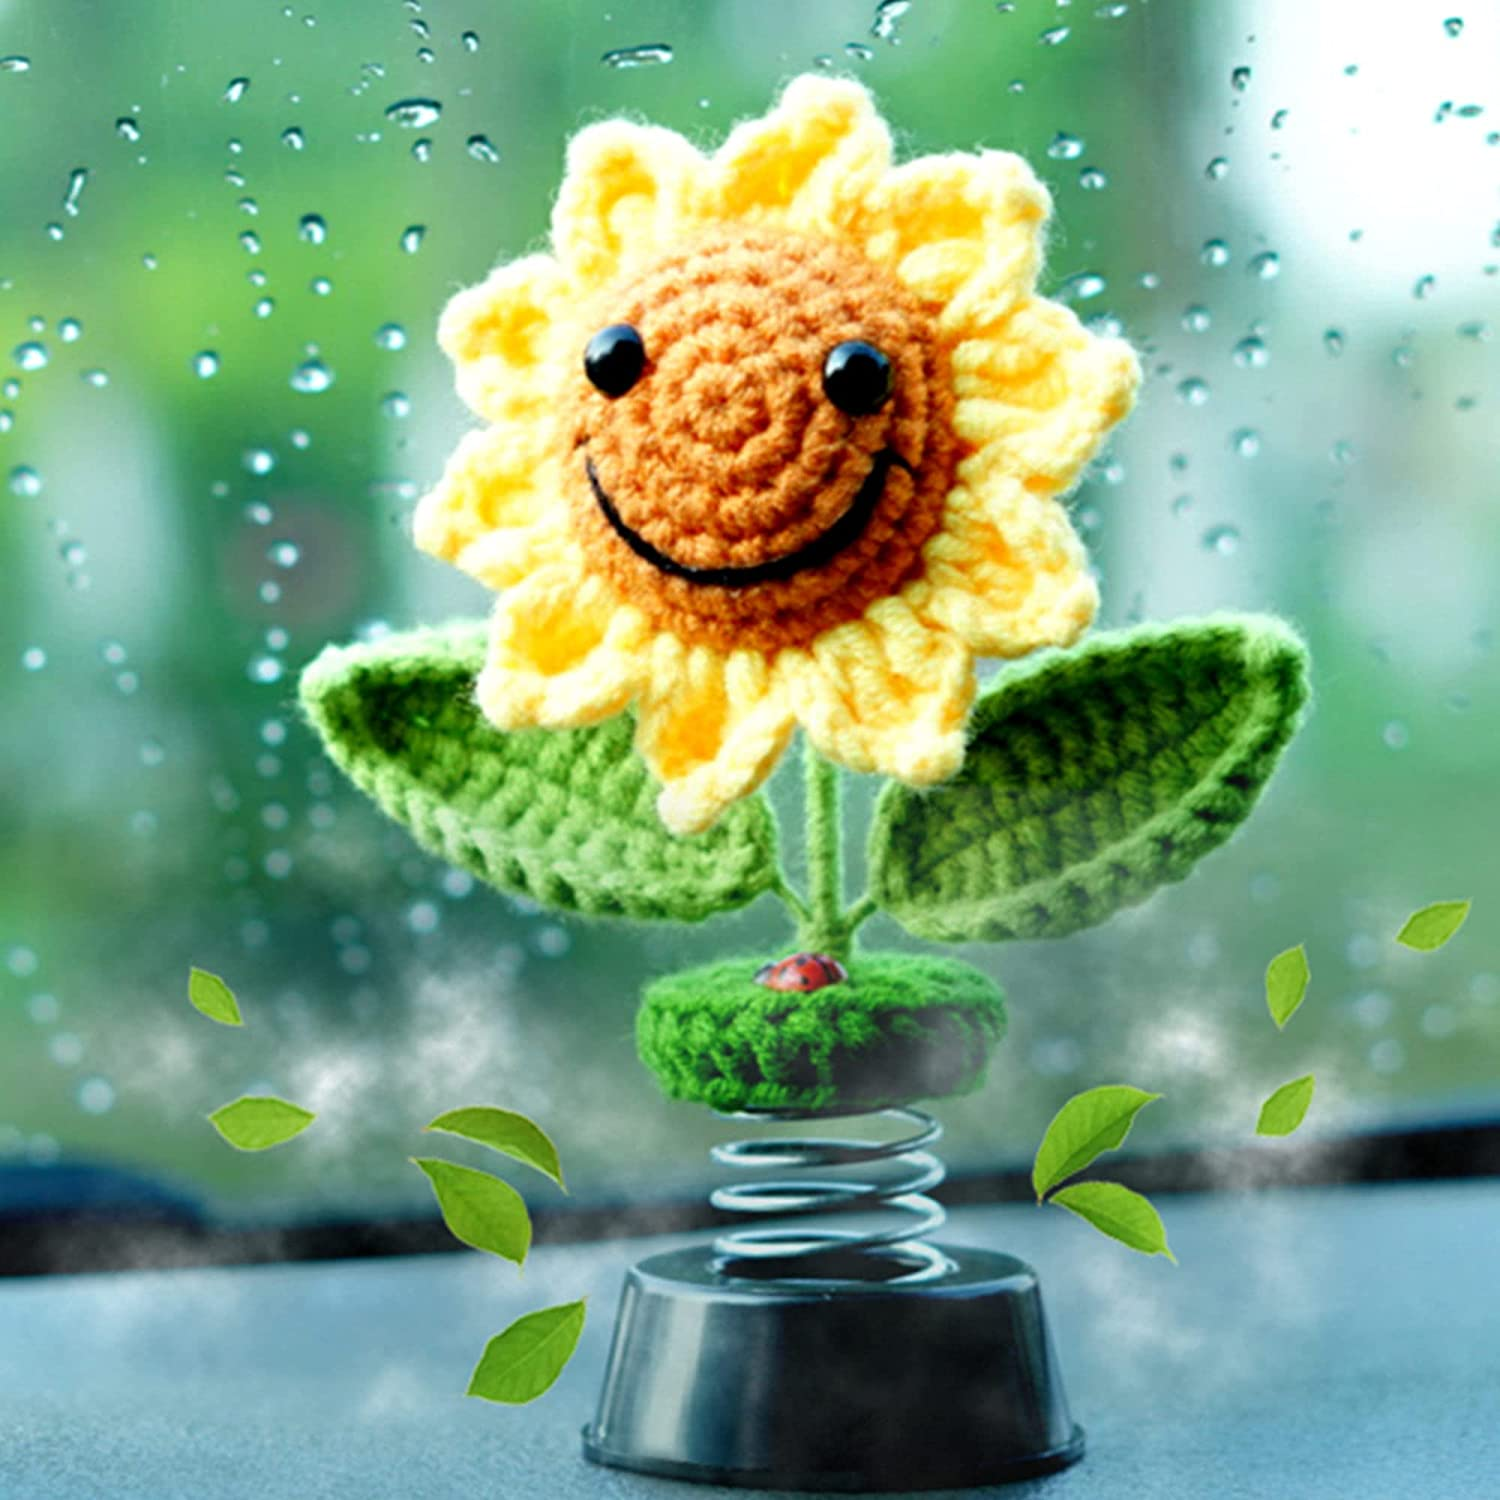 Sunflower Car Accessories Dashboard Decorations, Crochet Smiley Shaking Sun Flowers Beetle Fresheners Diffuser Car Decor for Women, for Cute Girl Car Interior Desk Ornaments Gifts (Handmade Knitted)